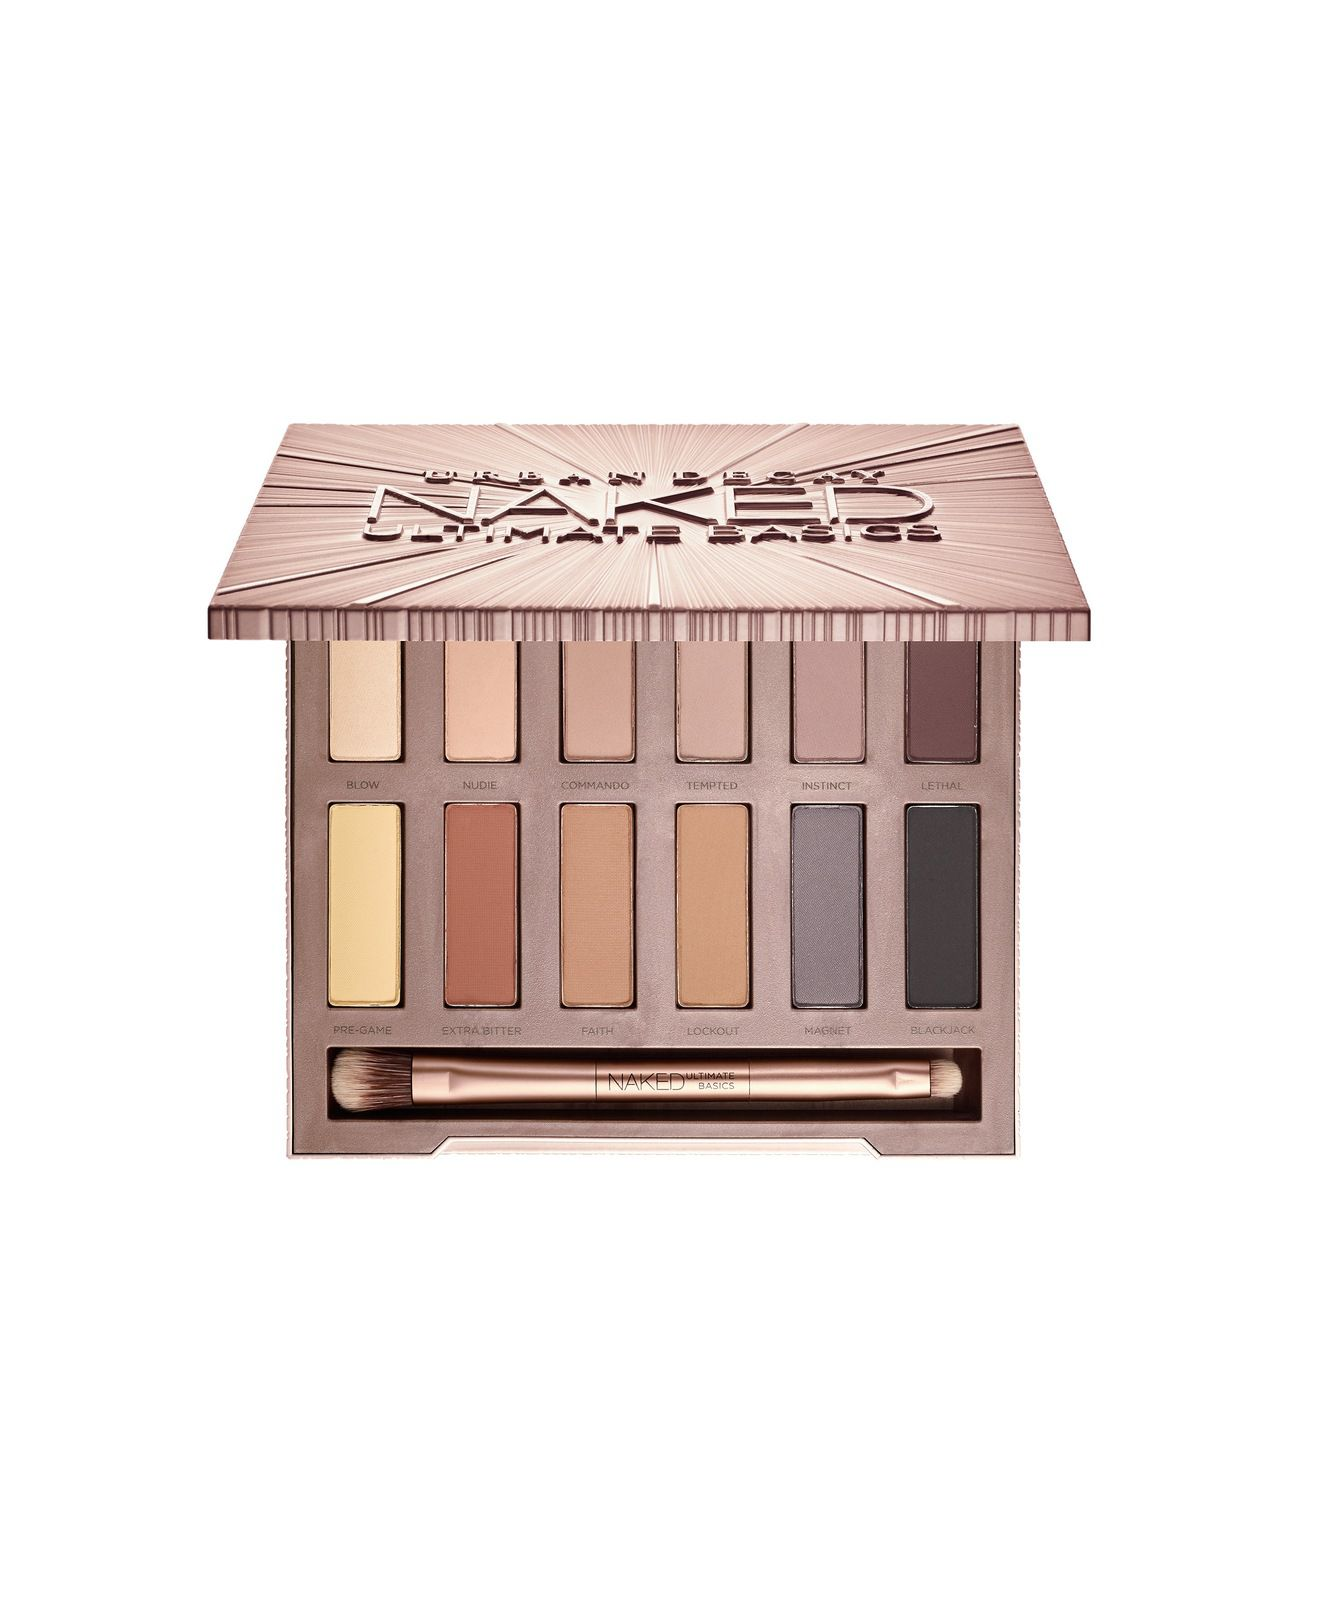 Paleta de sombras NAKED Ultimate Basics